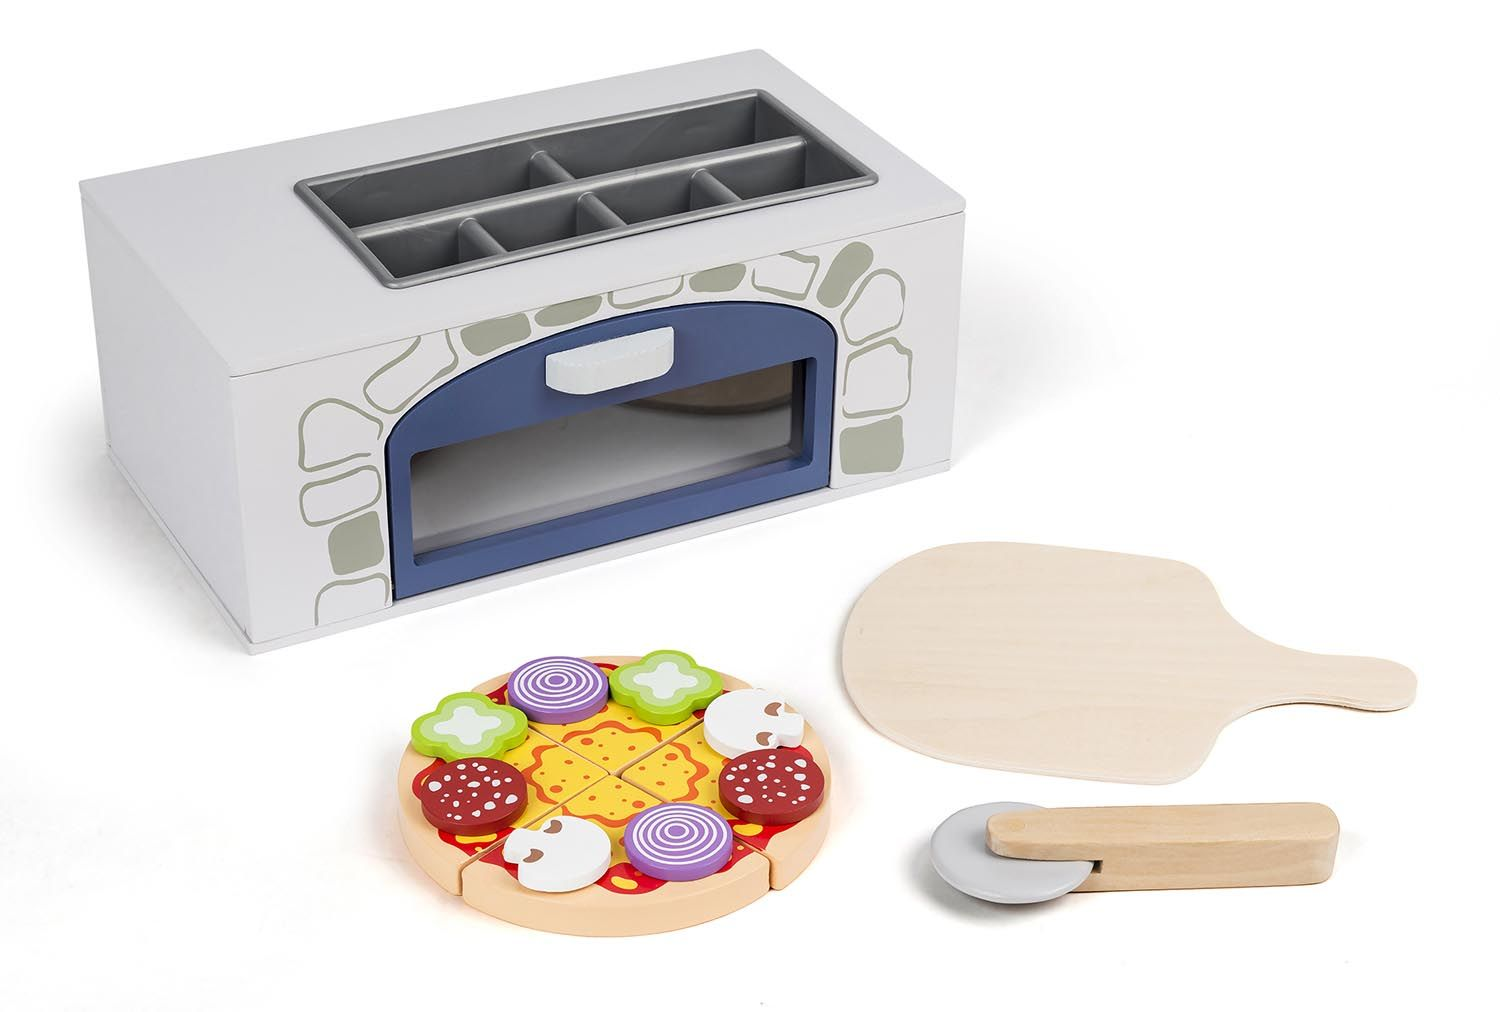 3-2-6 - Wooden pizza oven with accessories (68228)